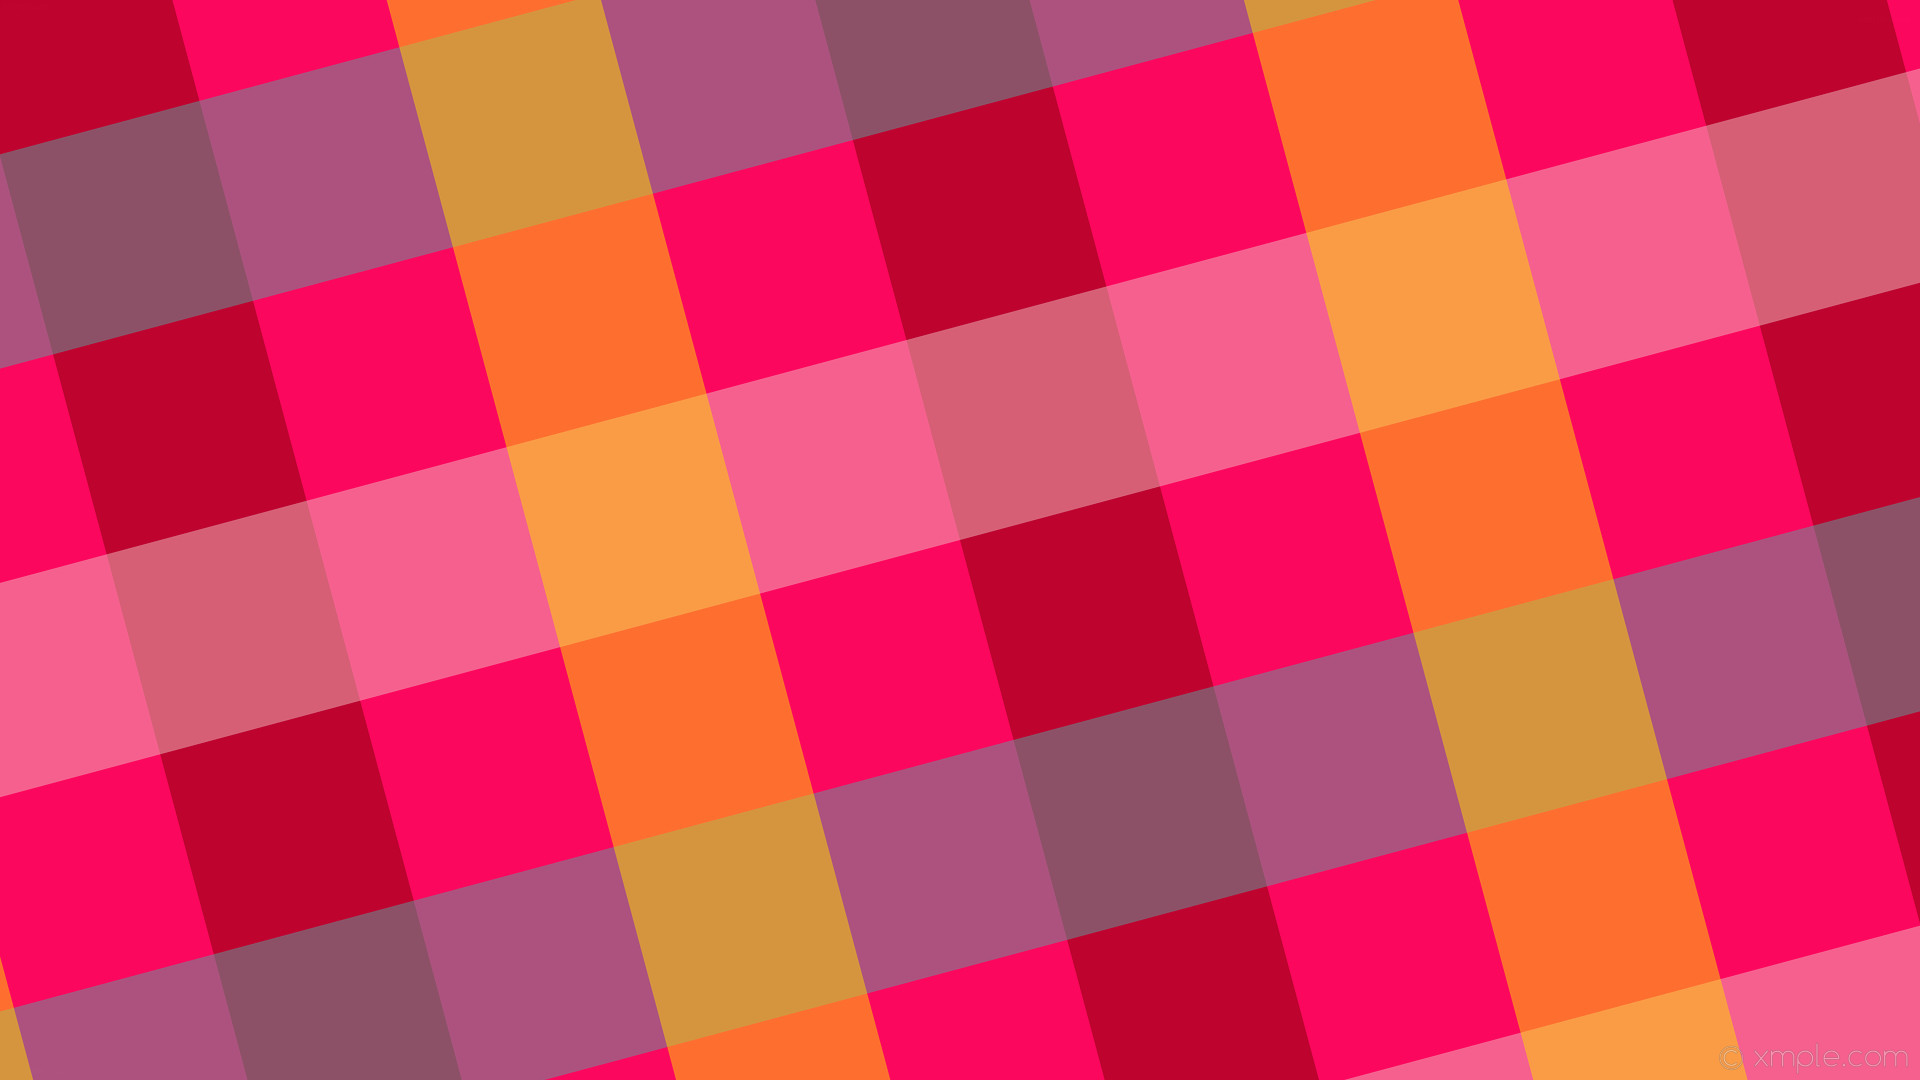 wallpaper gingham pink blue brown yellow red striped penta maroon light red  cadet blue gold #